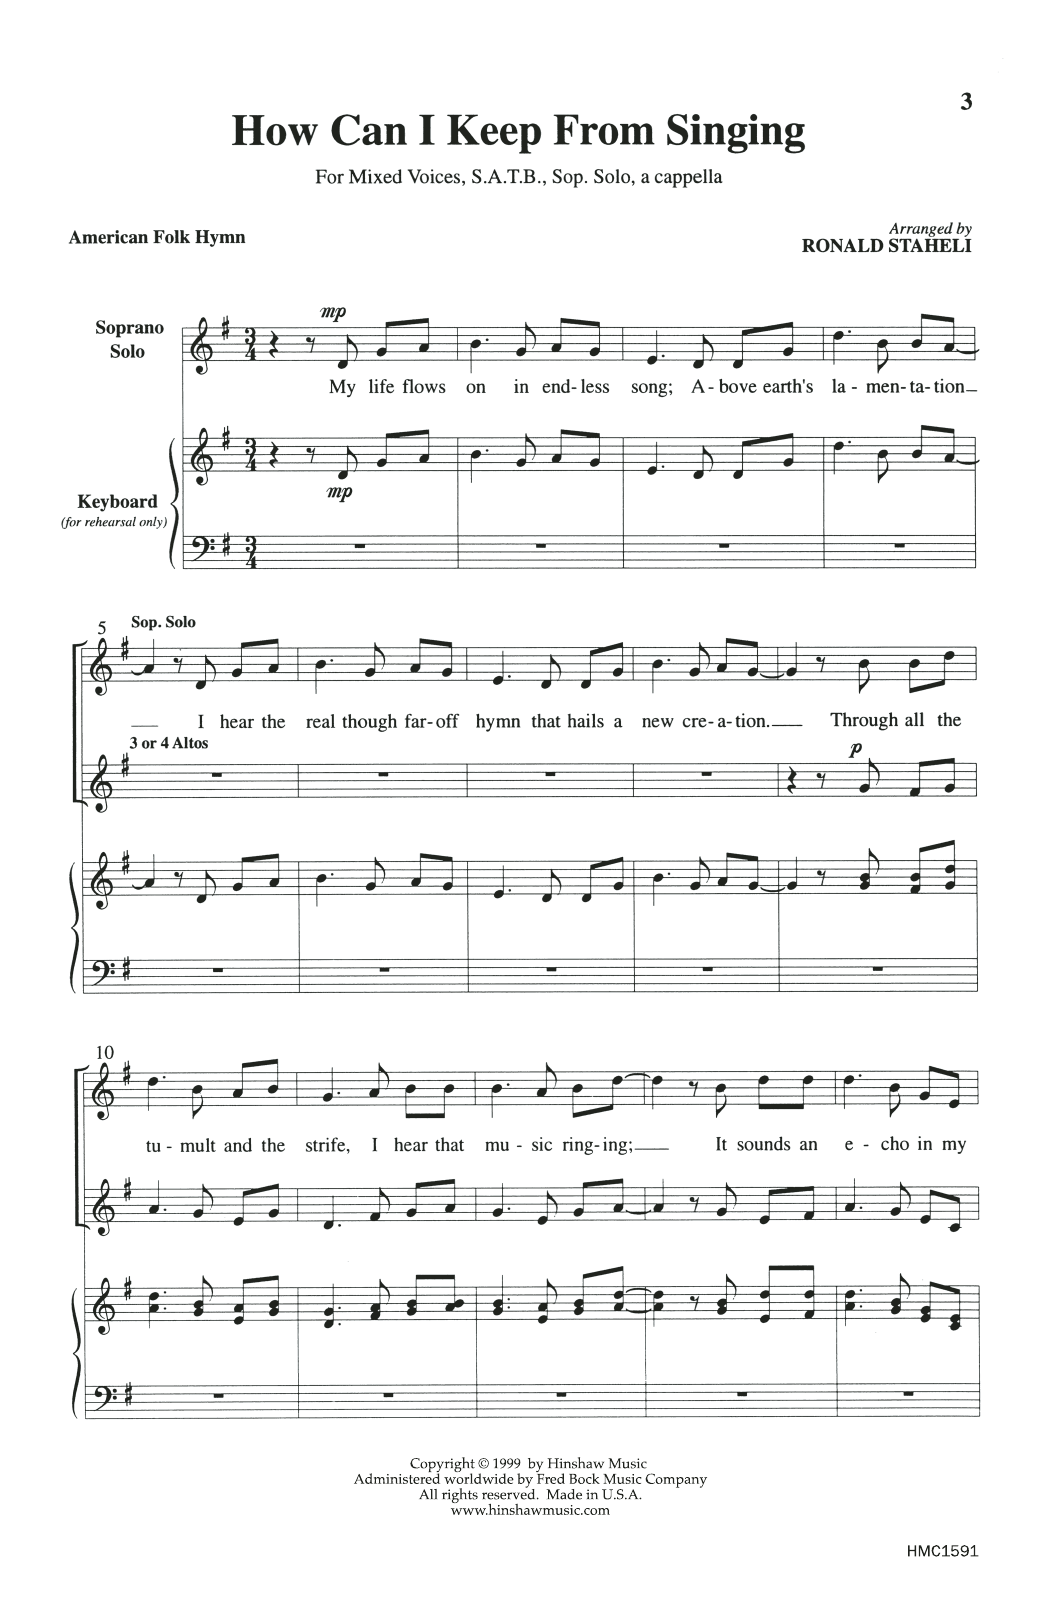 How Can I Keep From Singing (arr. Ronald Staheli) Sheet Music